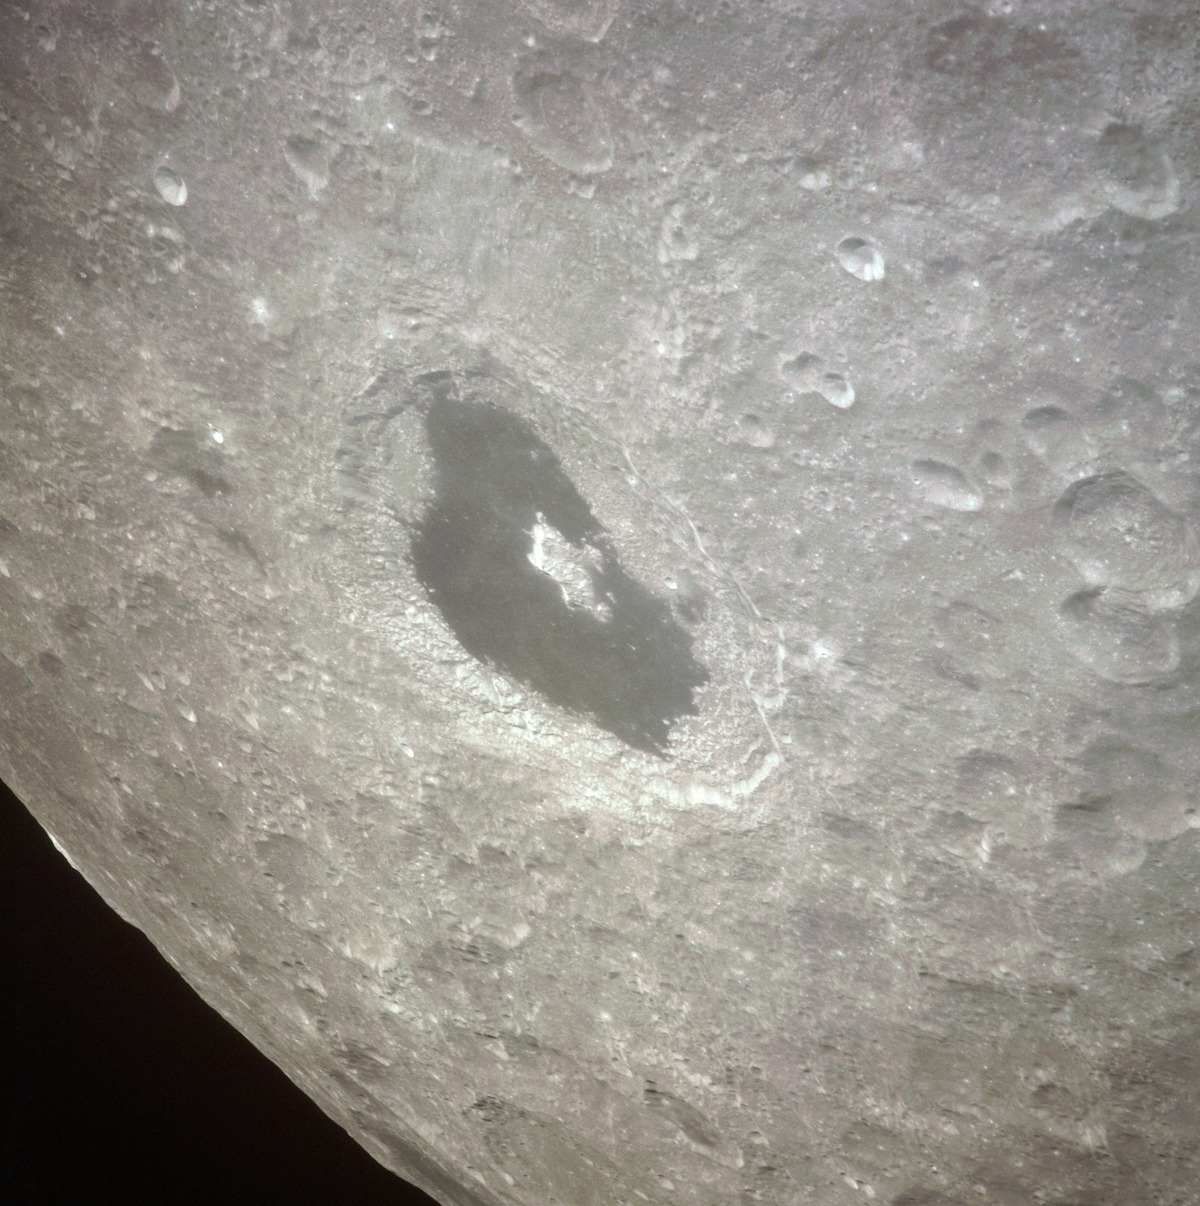 large lunar crater filled with dark, solidified lava